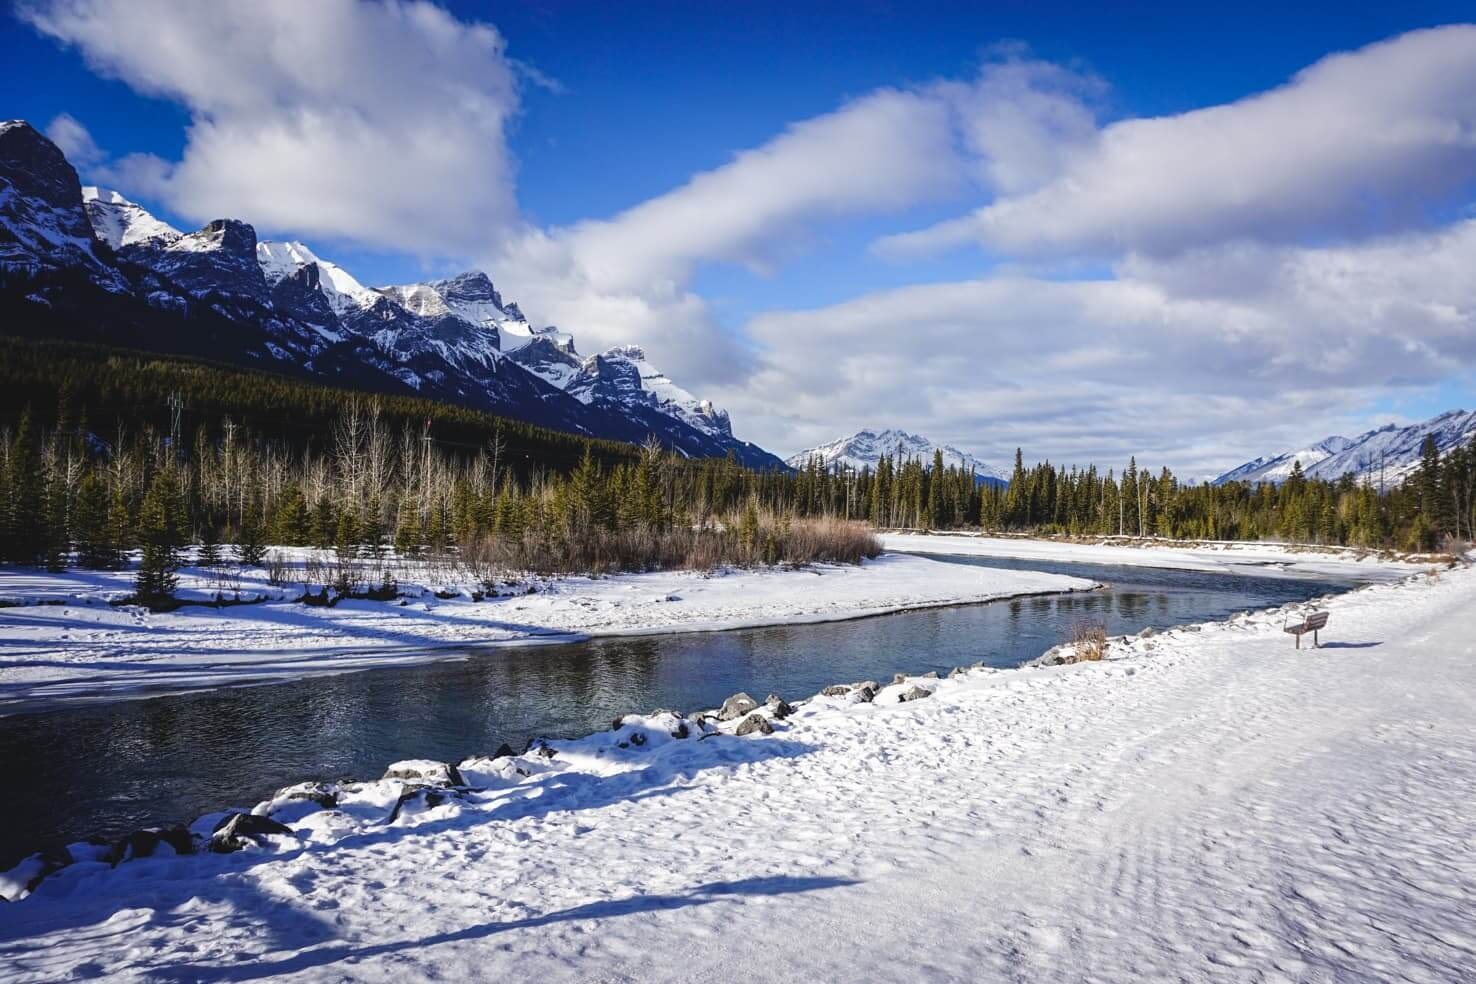 Bow River Trail in Canmore